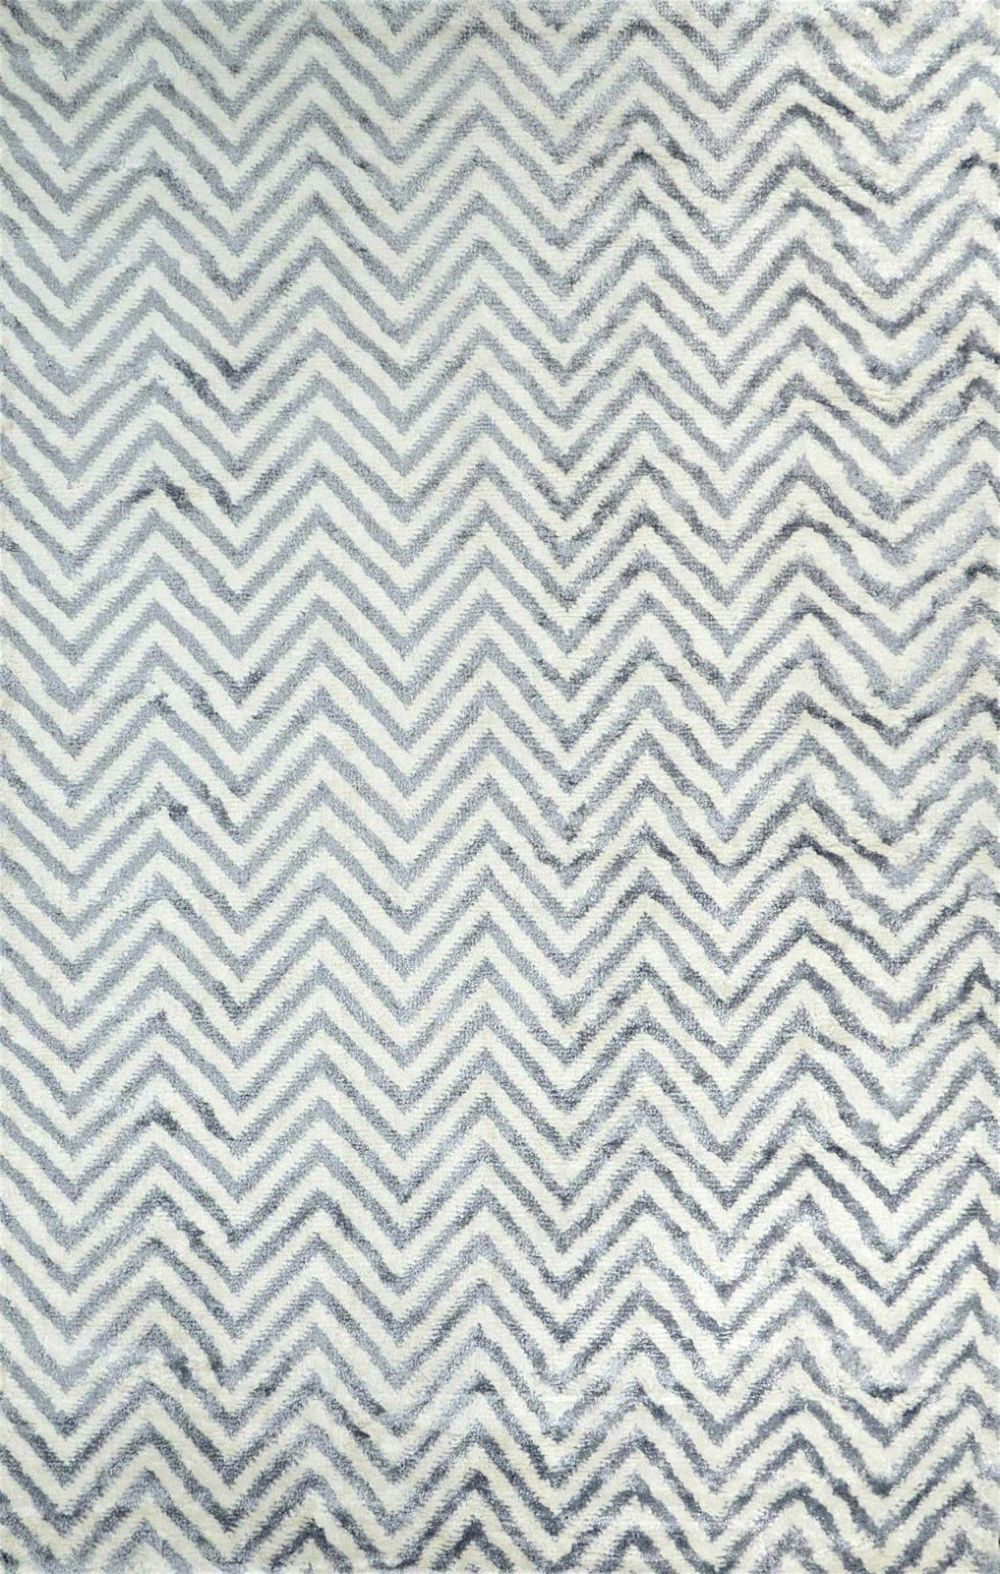 nuloom luxurious viscose chevron kelli contemporary area rug collection